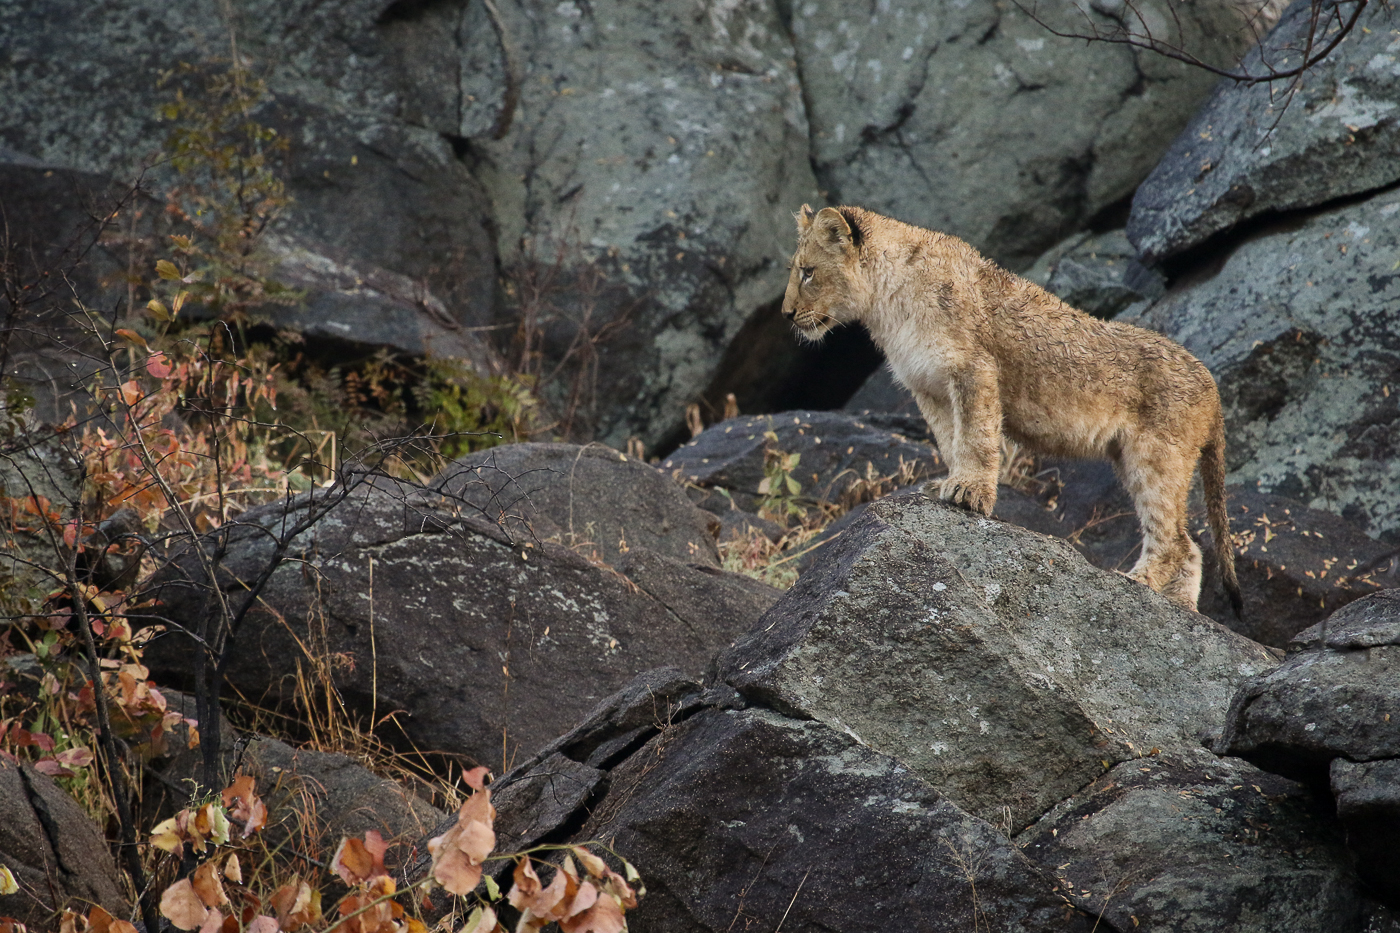 Tsalala cub on rock